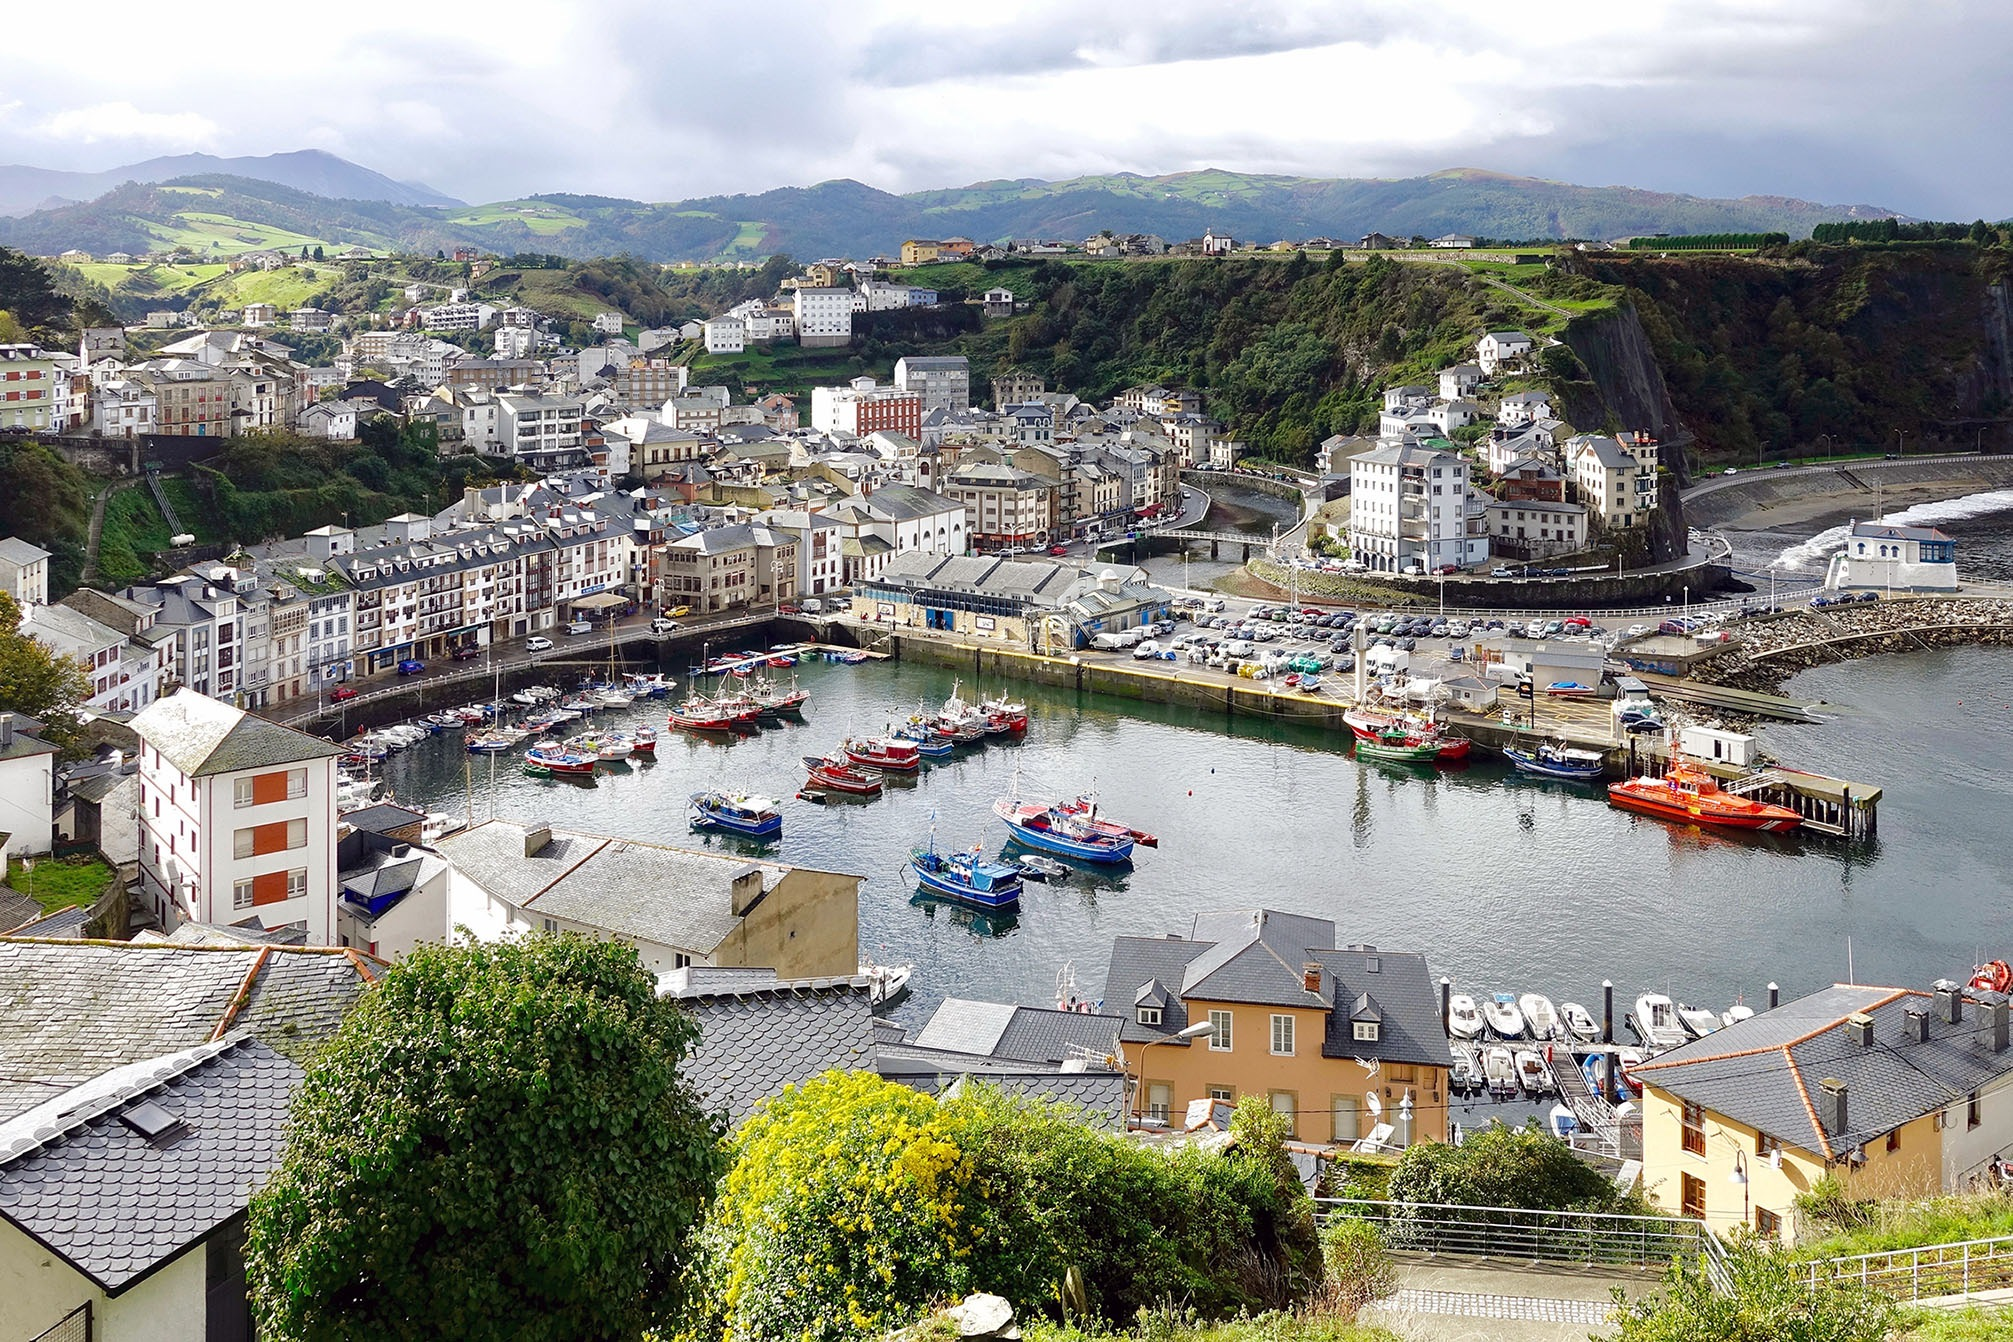 The fishing city of Luarca in Spain. by Erwin Widmer